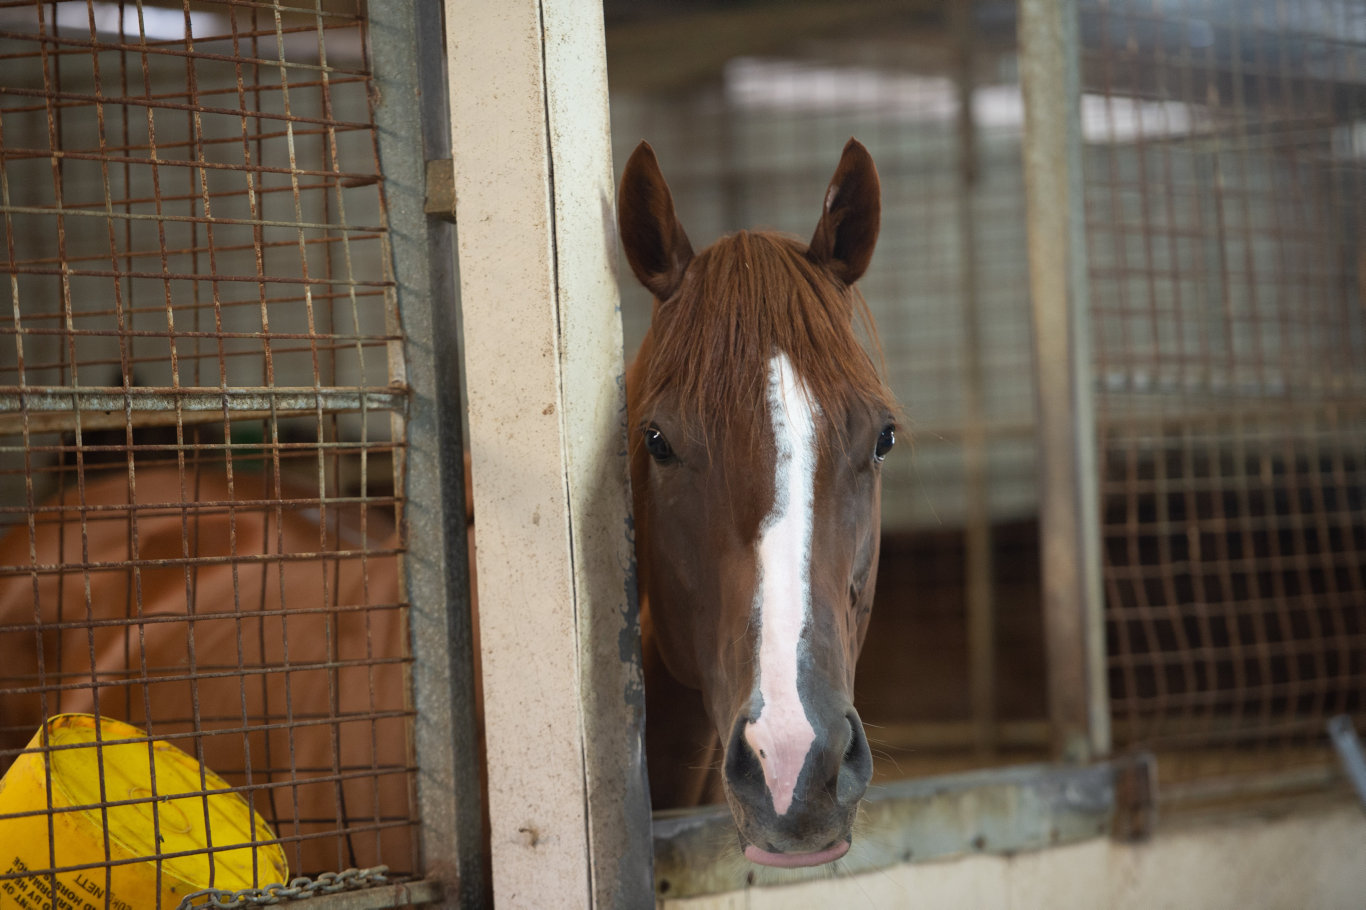 Hellenism stabled at Coffs Harbour.